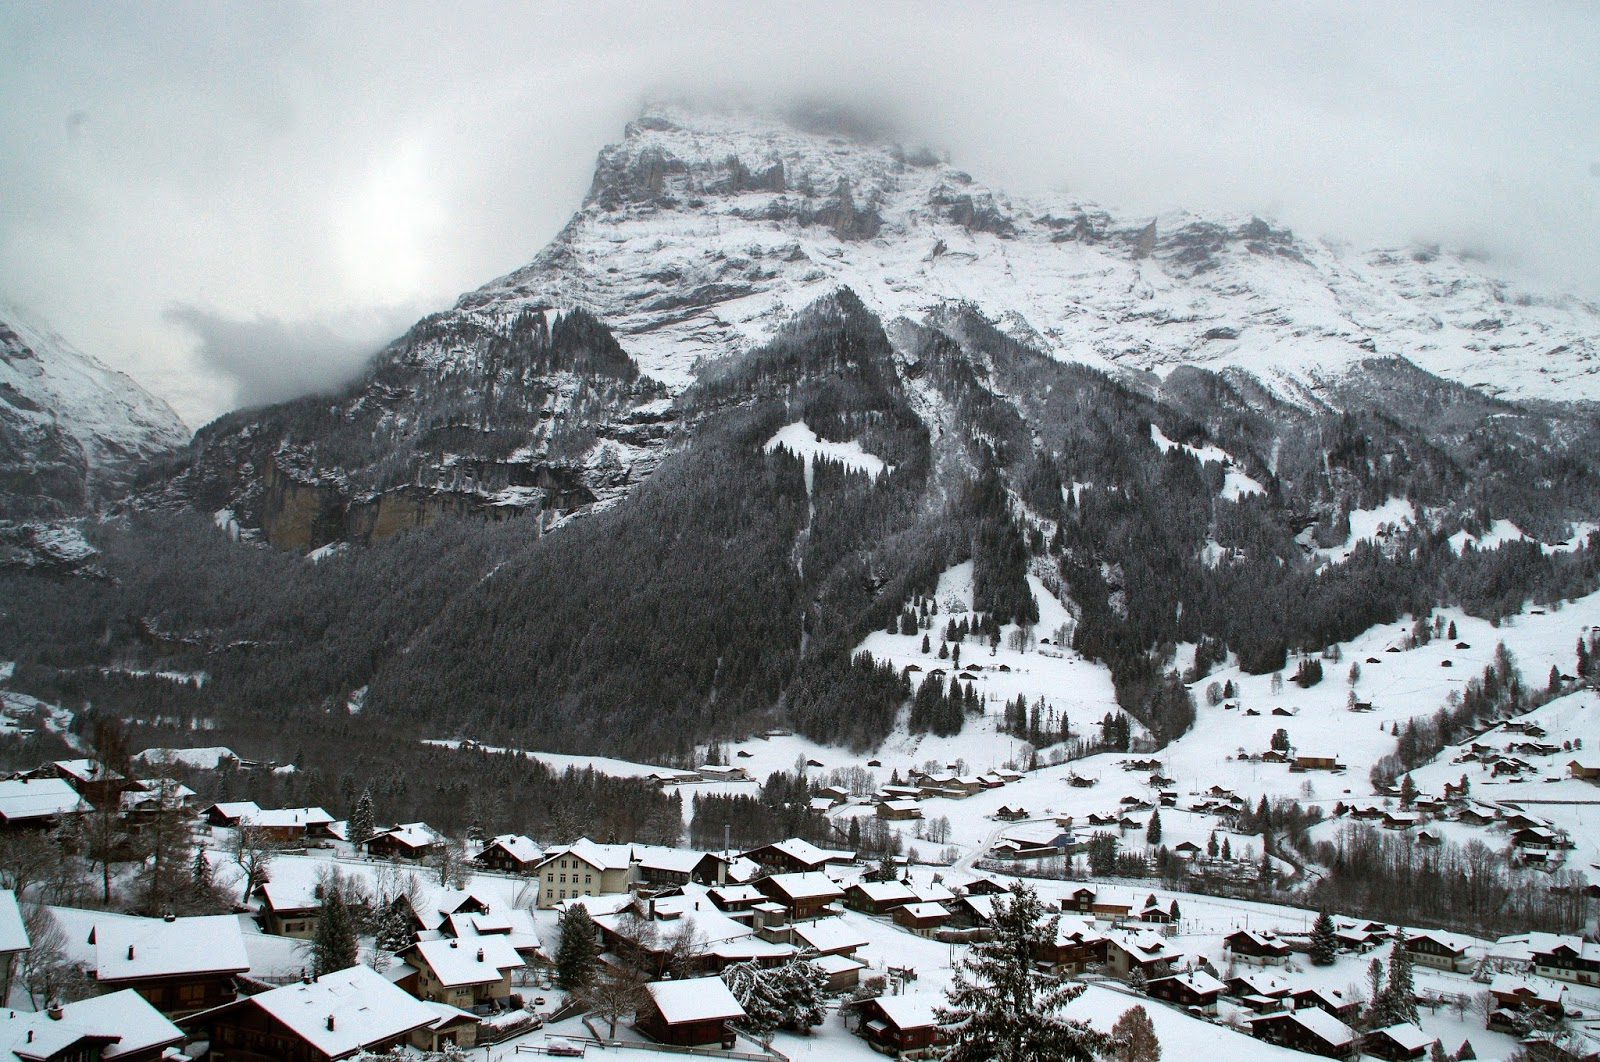 Hotel Belvedere Grindelwald View from Balcony